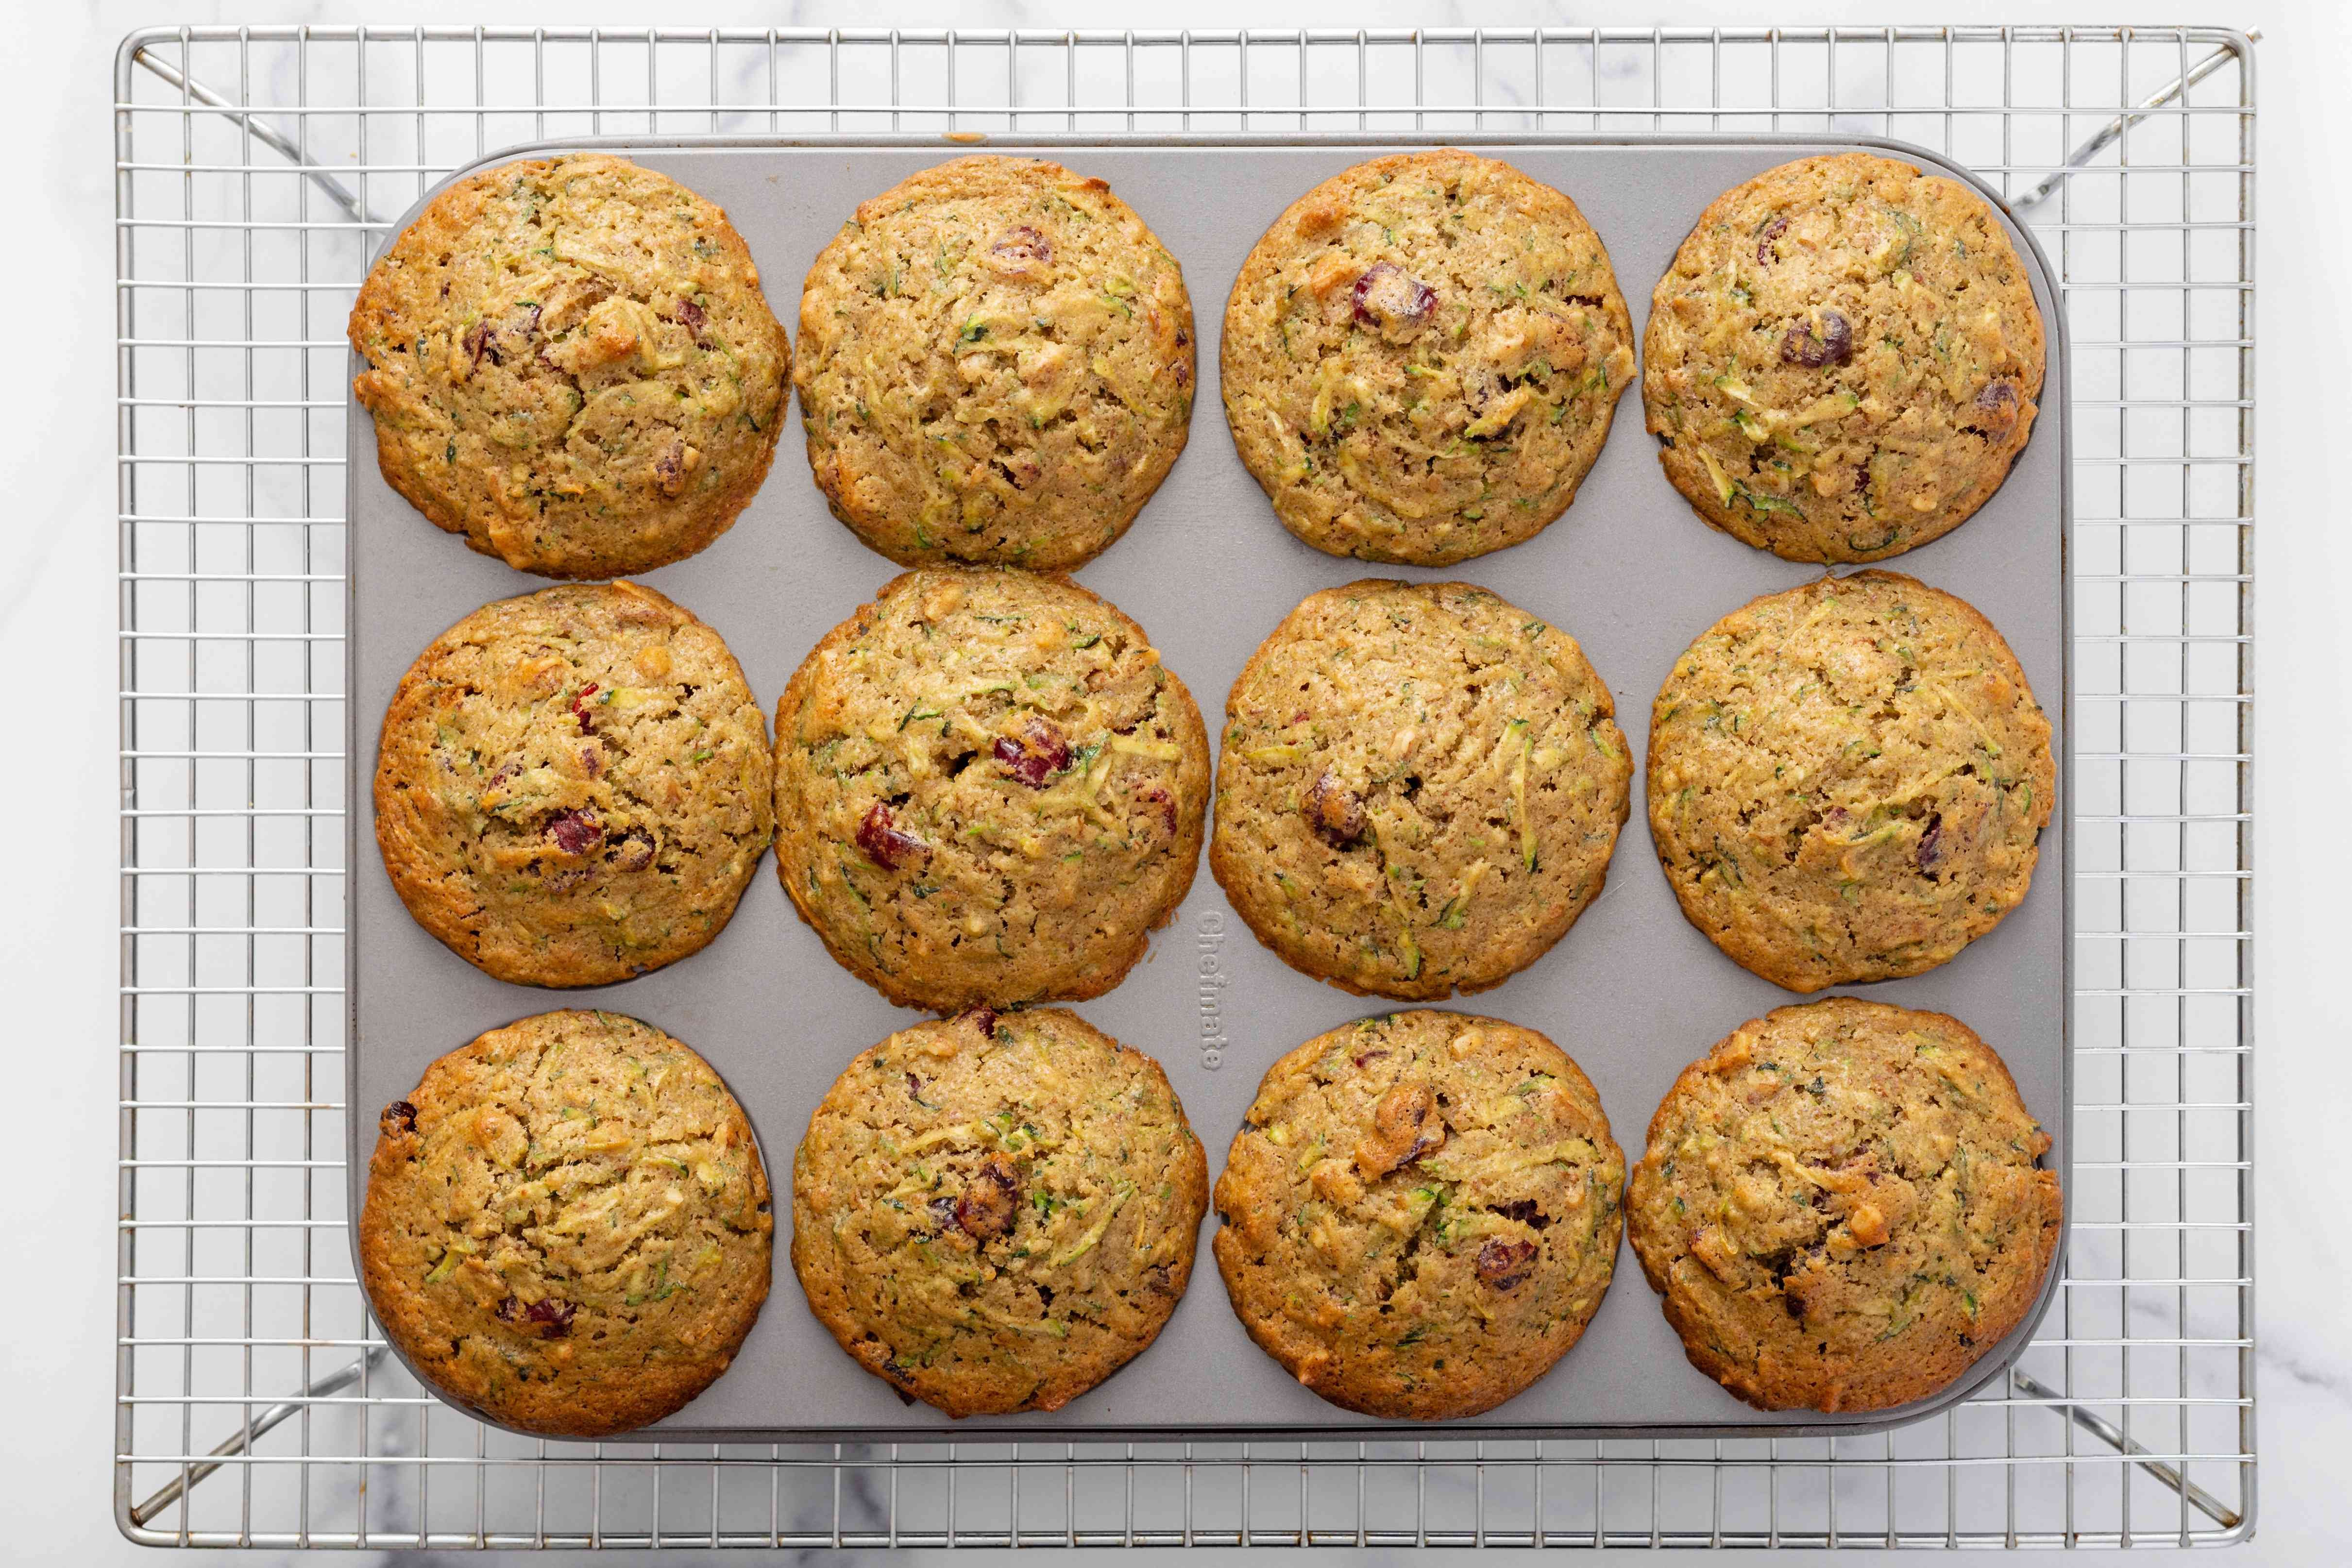 Overhead view of a muffin tin of zucchini bread muffins cooling on a rack.